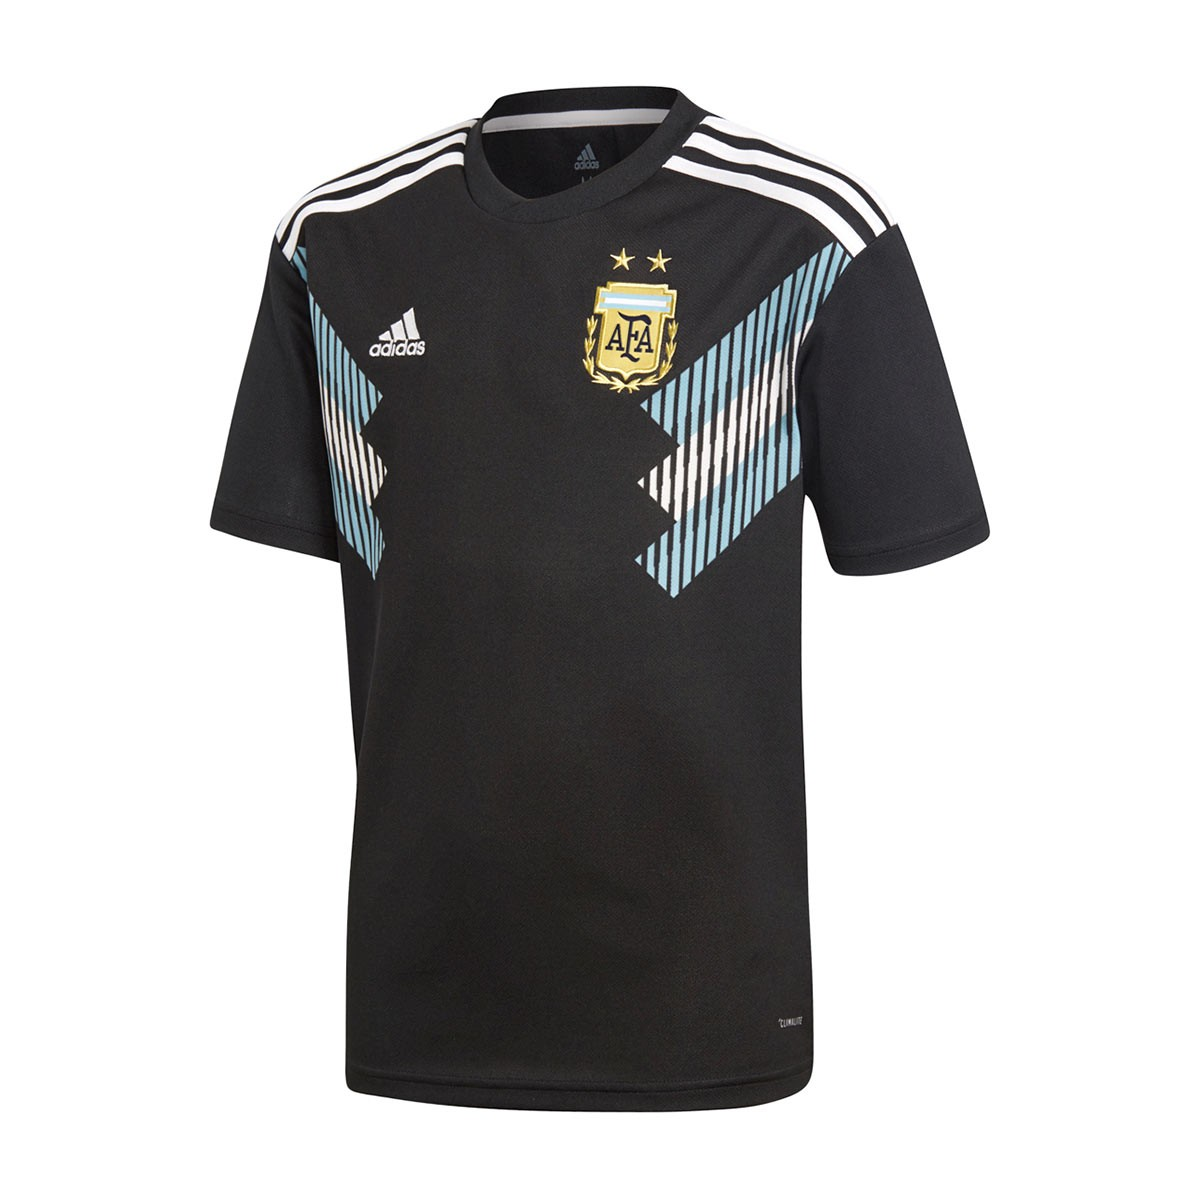 49f6642eedf Jersey adidas Kids Argentina 2017-2018 Away Black-Clear blue-White ...